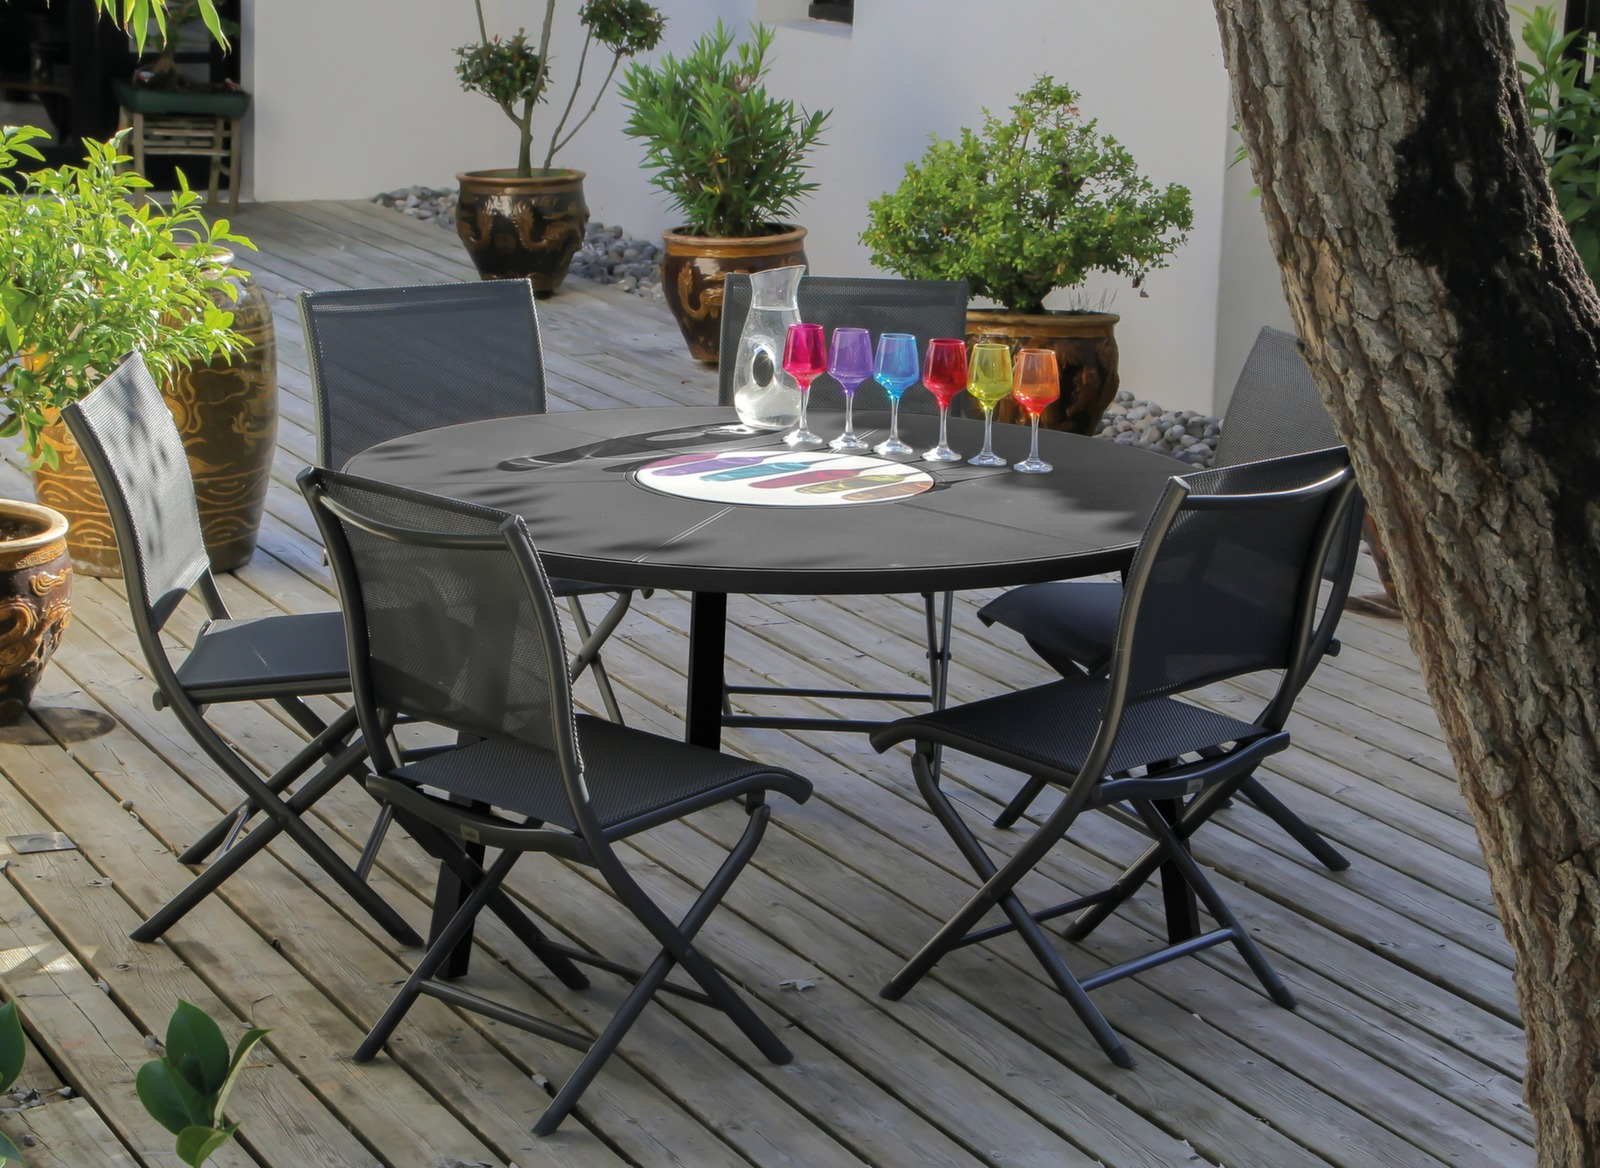 table de jardin ronde en promo azur 150cm promotions proloisirs. Black Bedroom Furniture Sets. Home Design Ideas